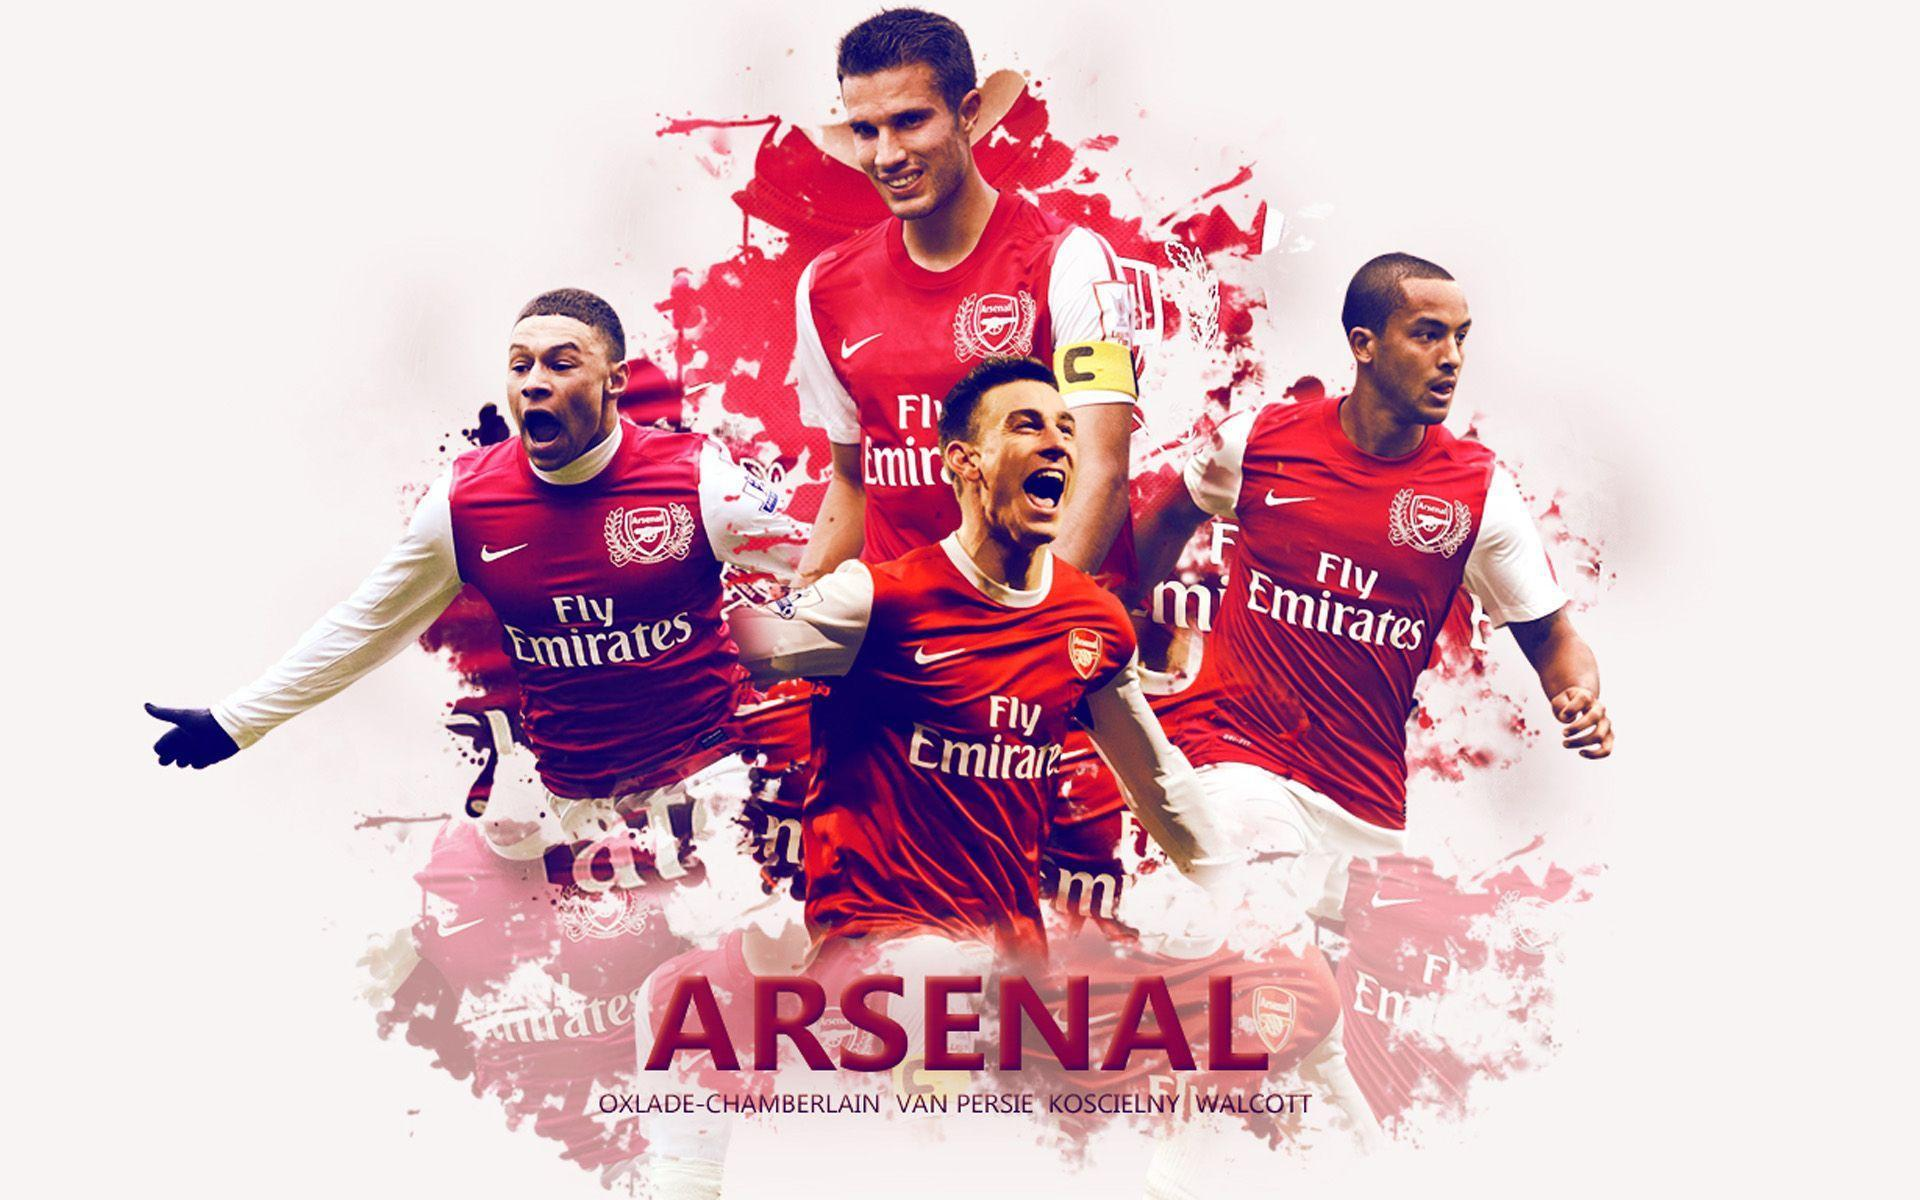 arsenal players 2021 wallpapers